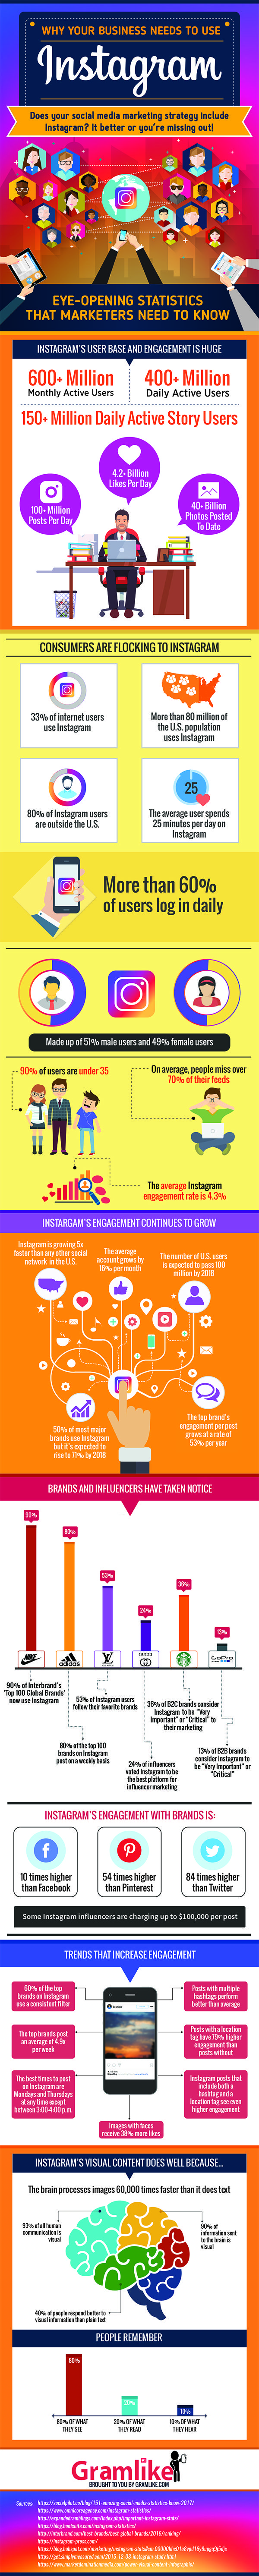 Social Media Marketing & Instagram Infographic